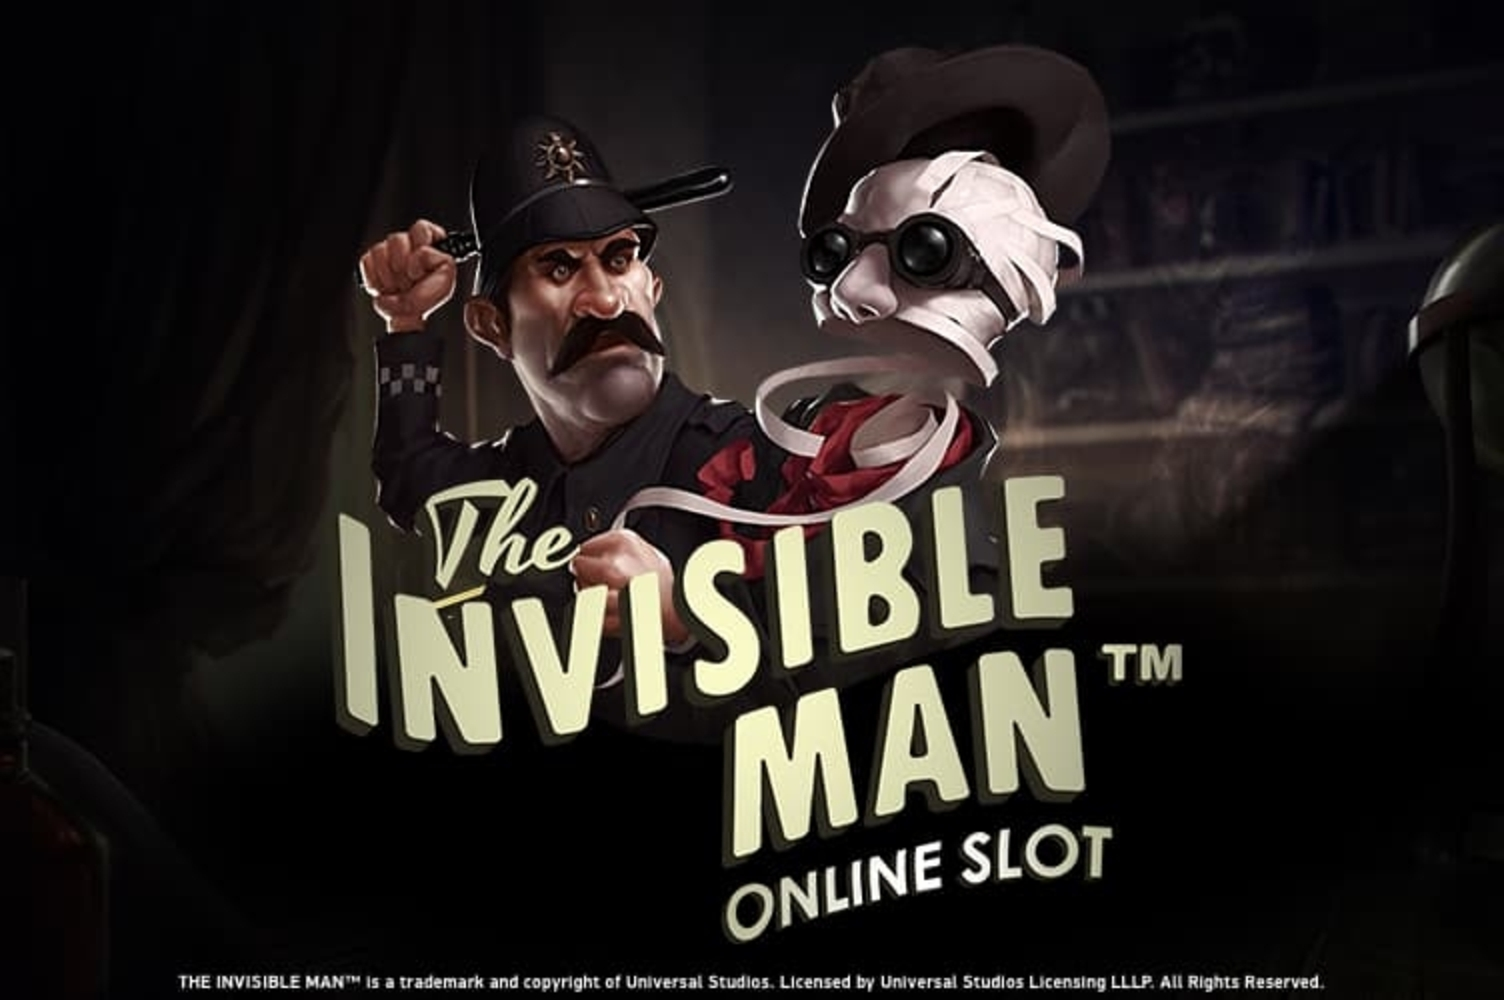 Se The Invisible Man Online Slot Demo Game, NetEnt